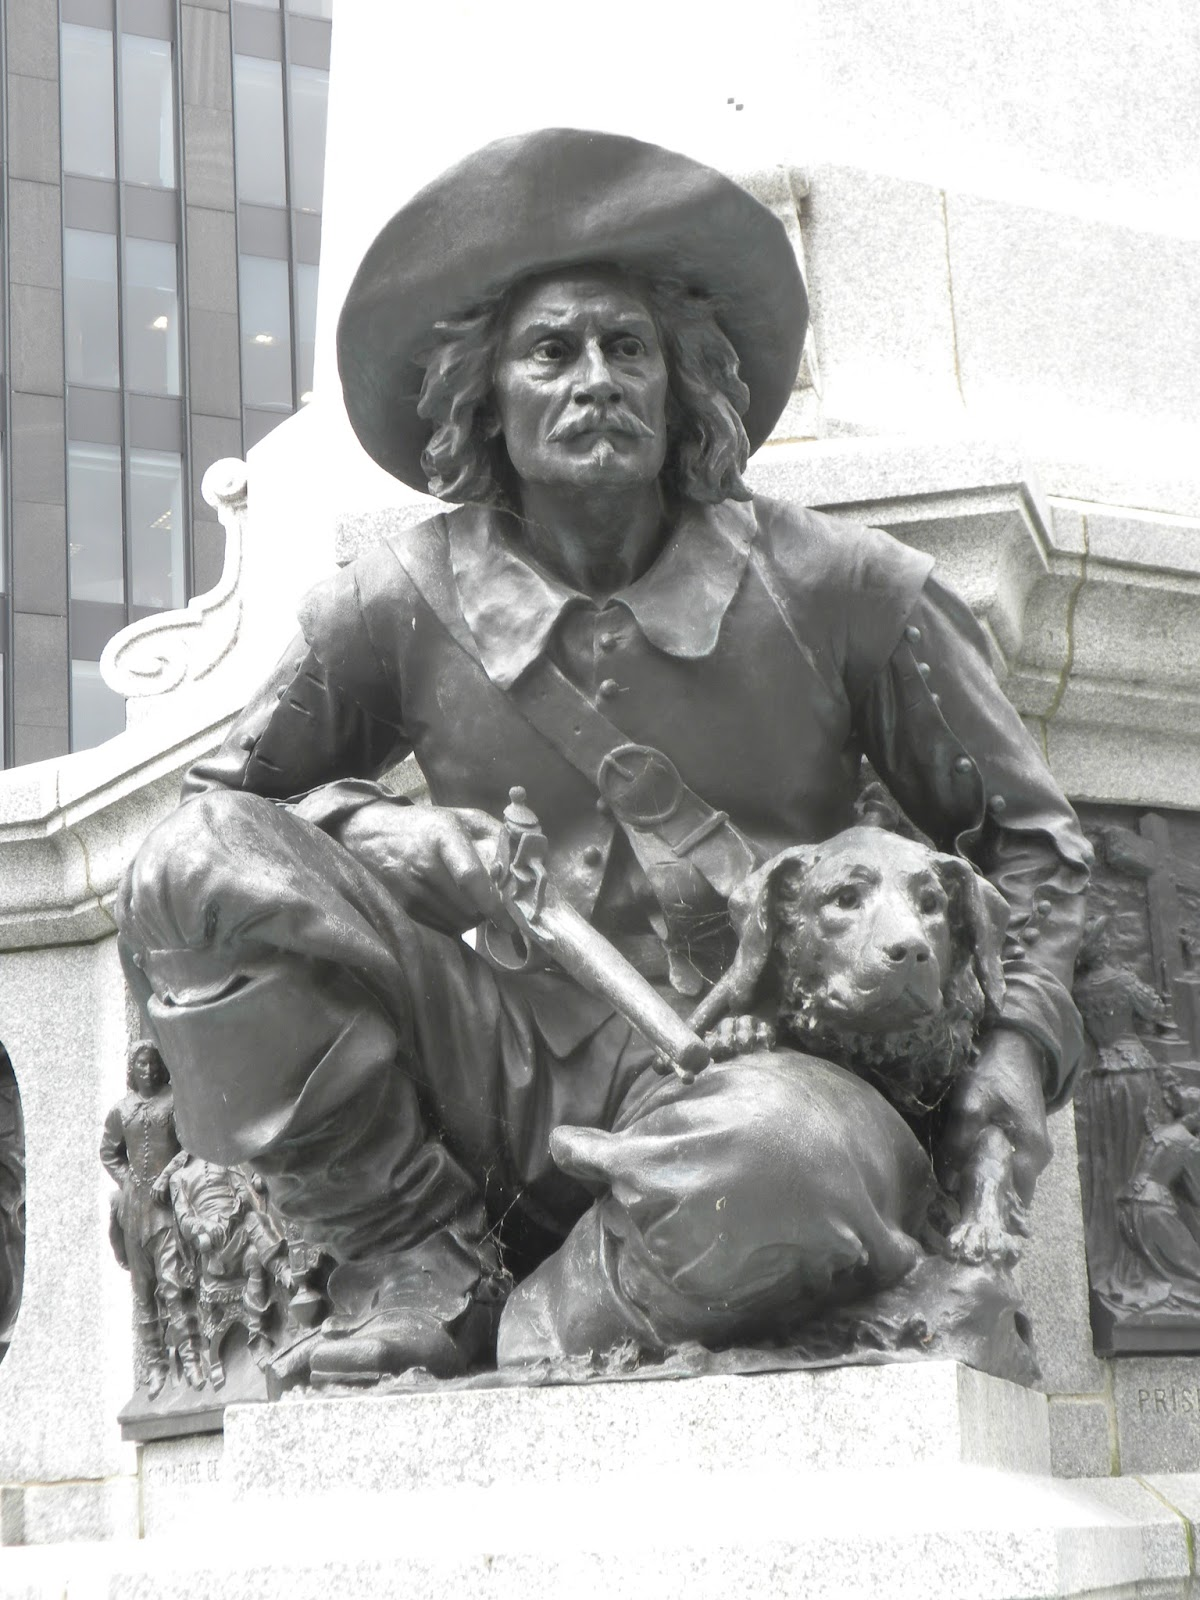 essay on samuel de champlain The early explorer's journalschristopher columbus and samuel de champlain were two of the most influential explorers in the history of the americas columbus discovered the area near caribbean islands while champlain explored the st lawrence seaway.